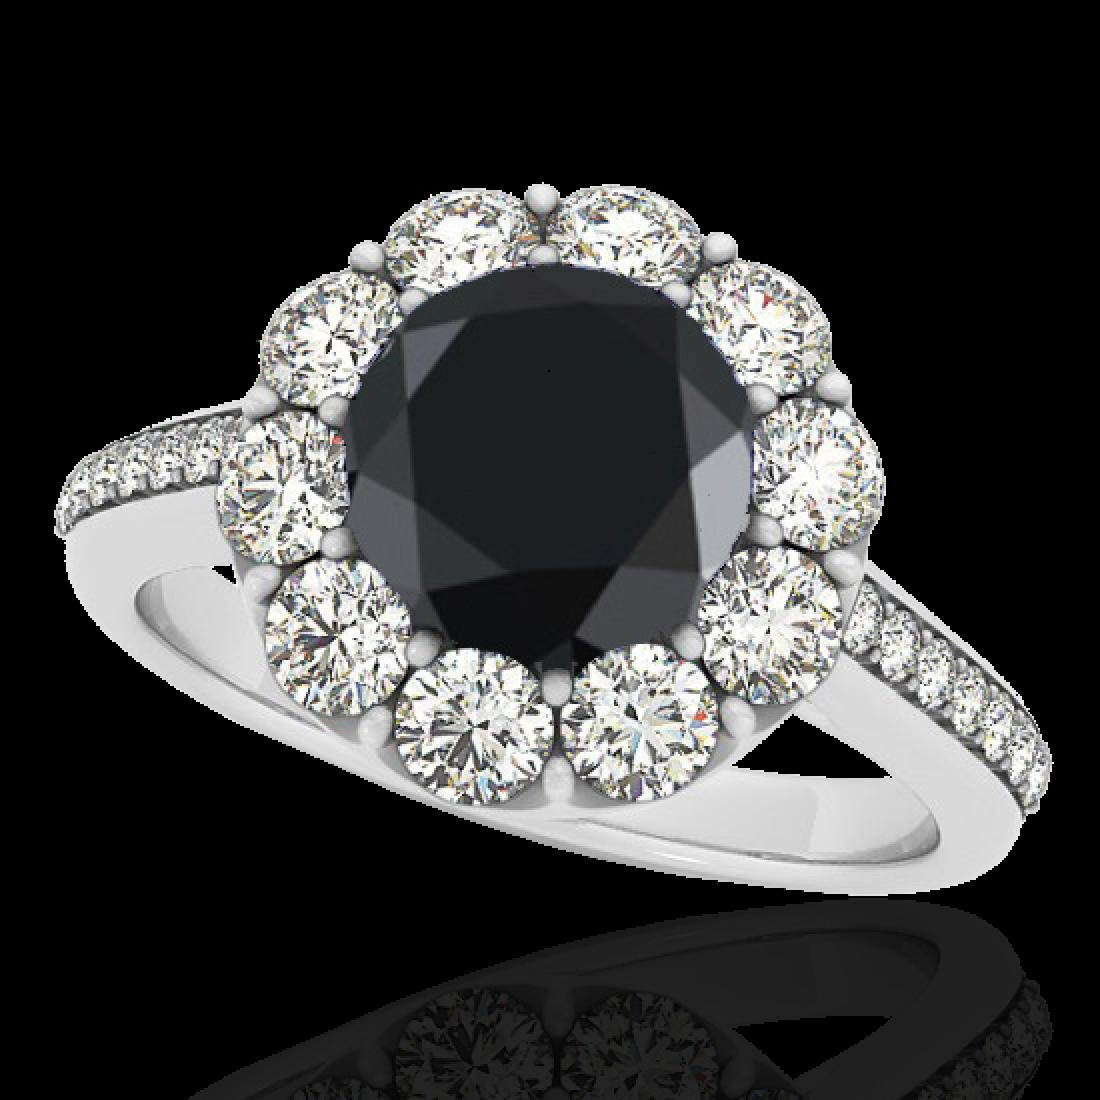 2.75 CTW Certified VS Black Diamond Solitaire Halo Ring